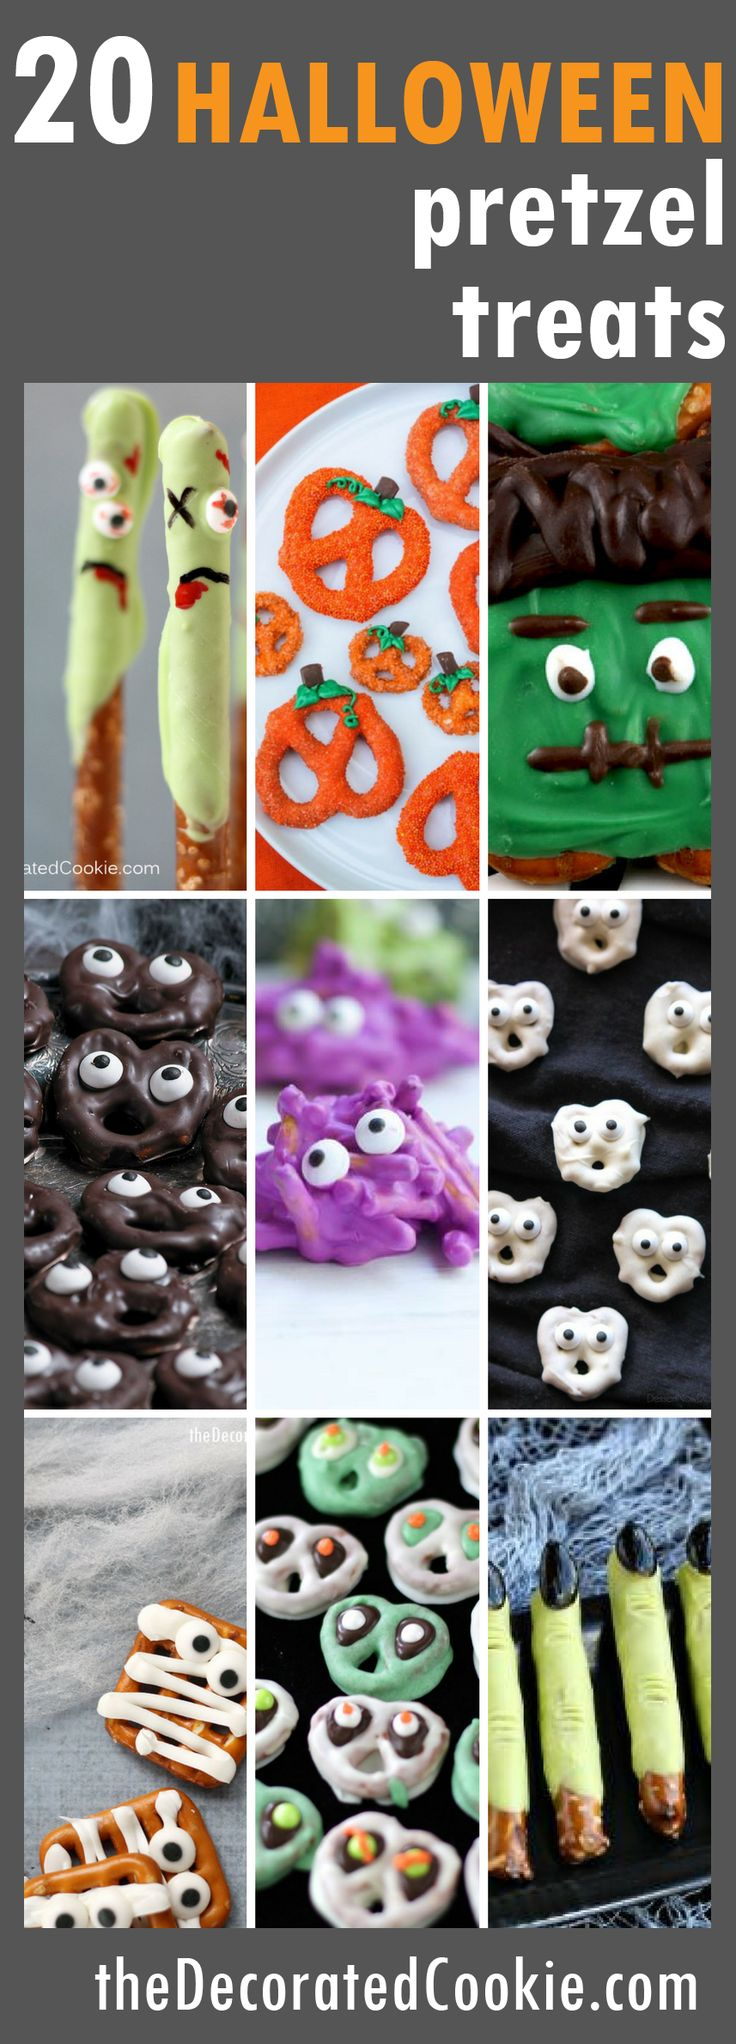 20 Halloween pretzel treats roundup - The Decorated Cookie